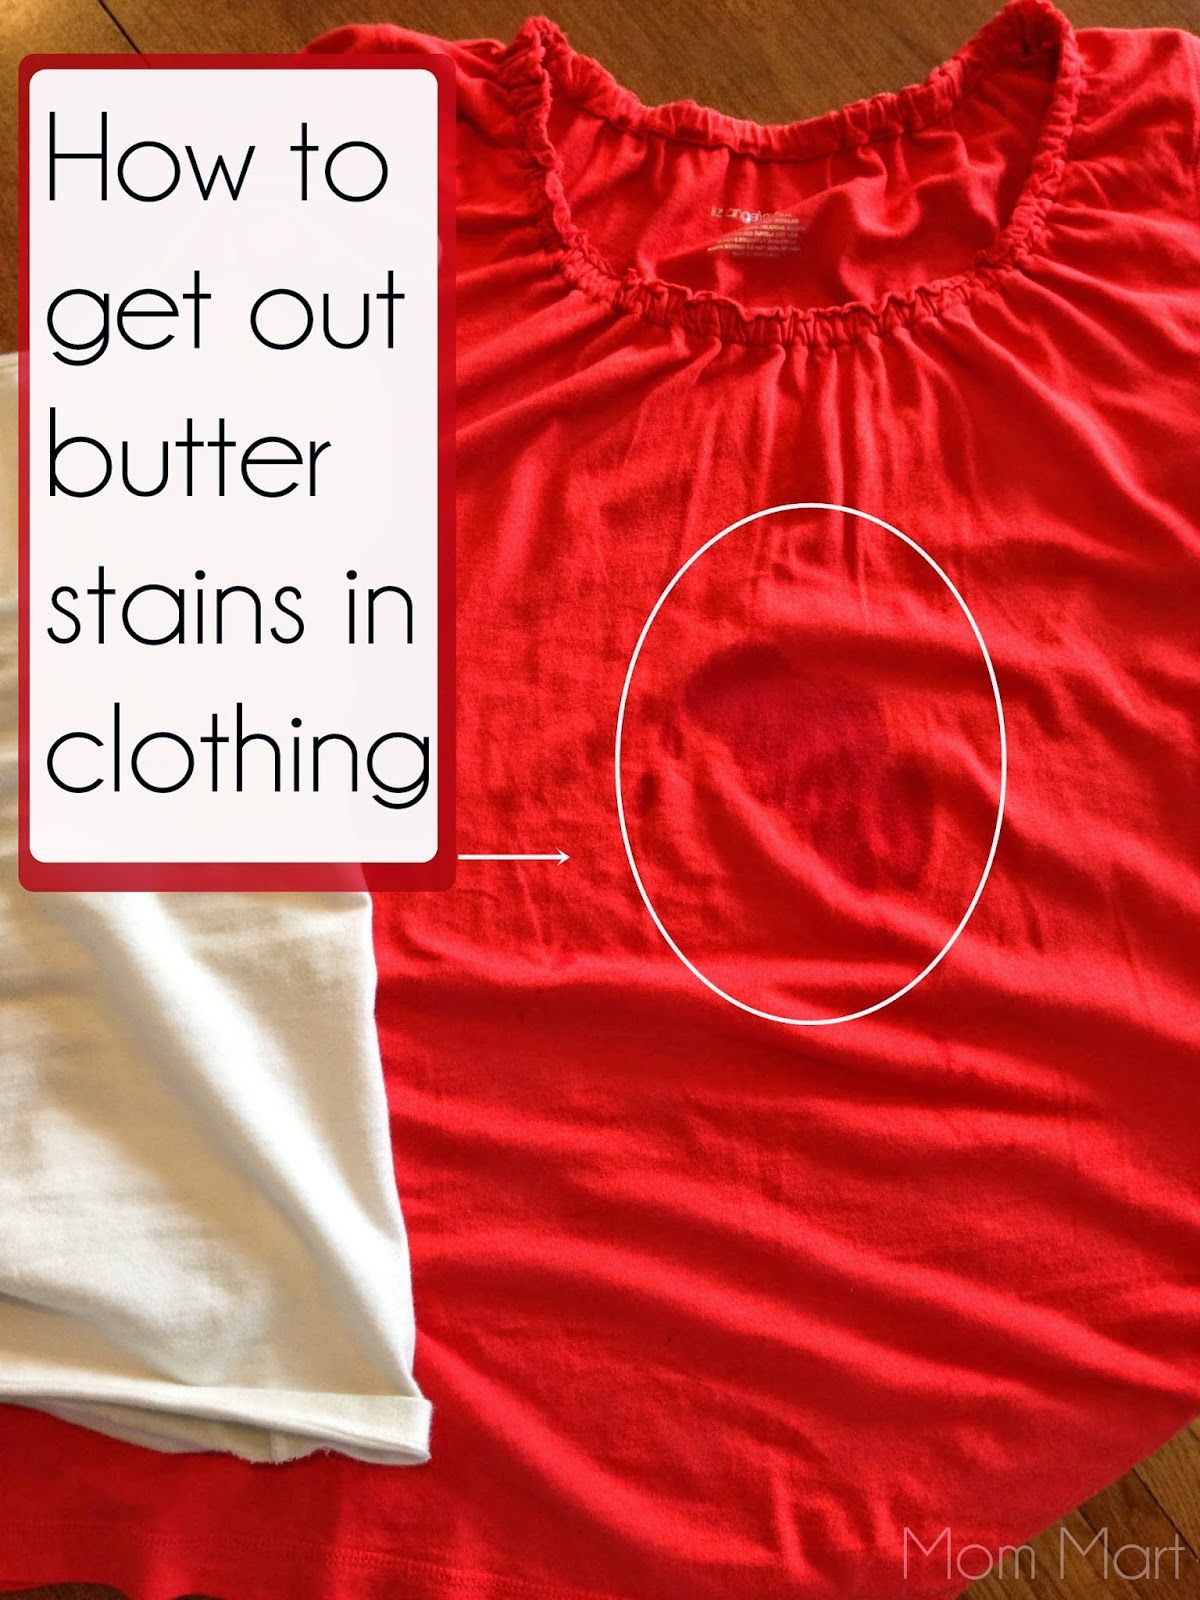 How To Get Out Butter Stains Diy Clean Dishwasher House